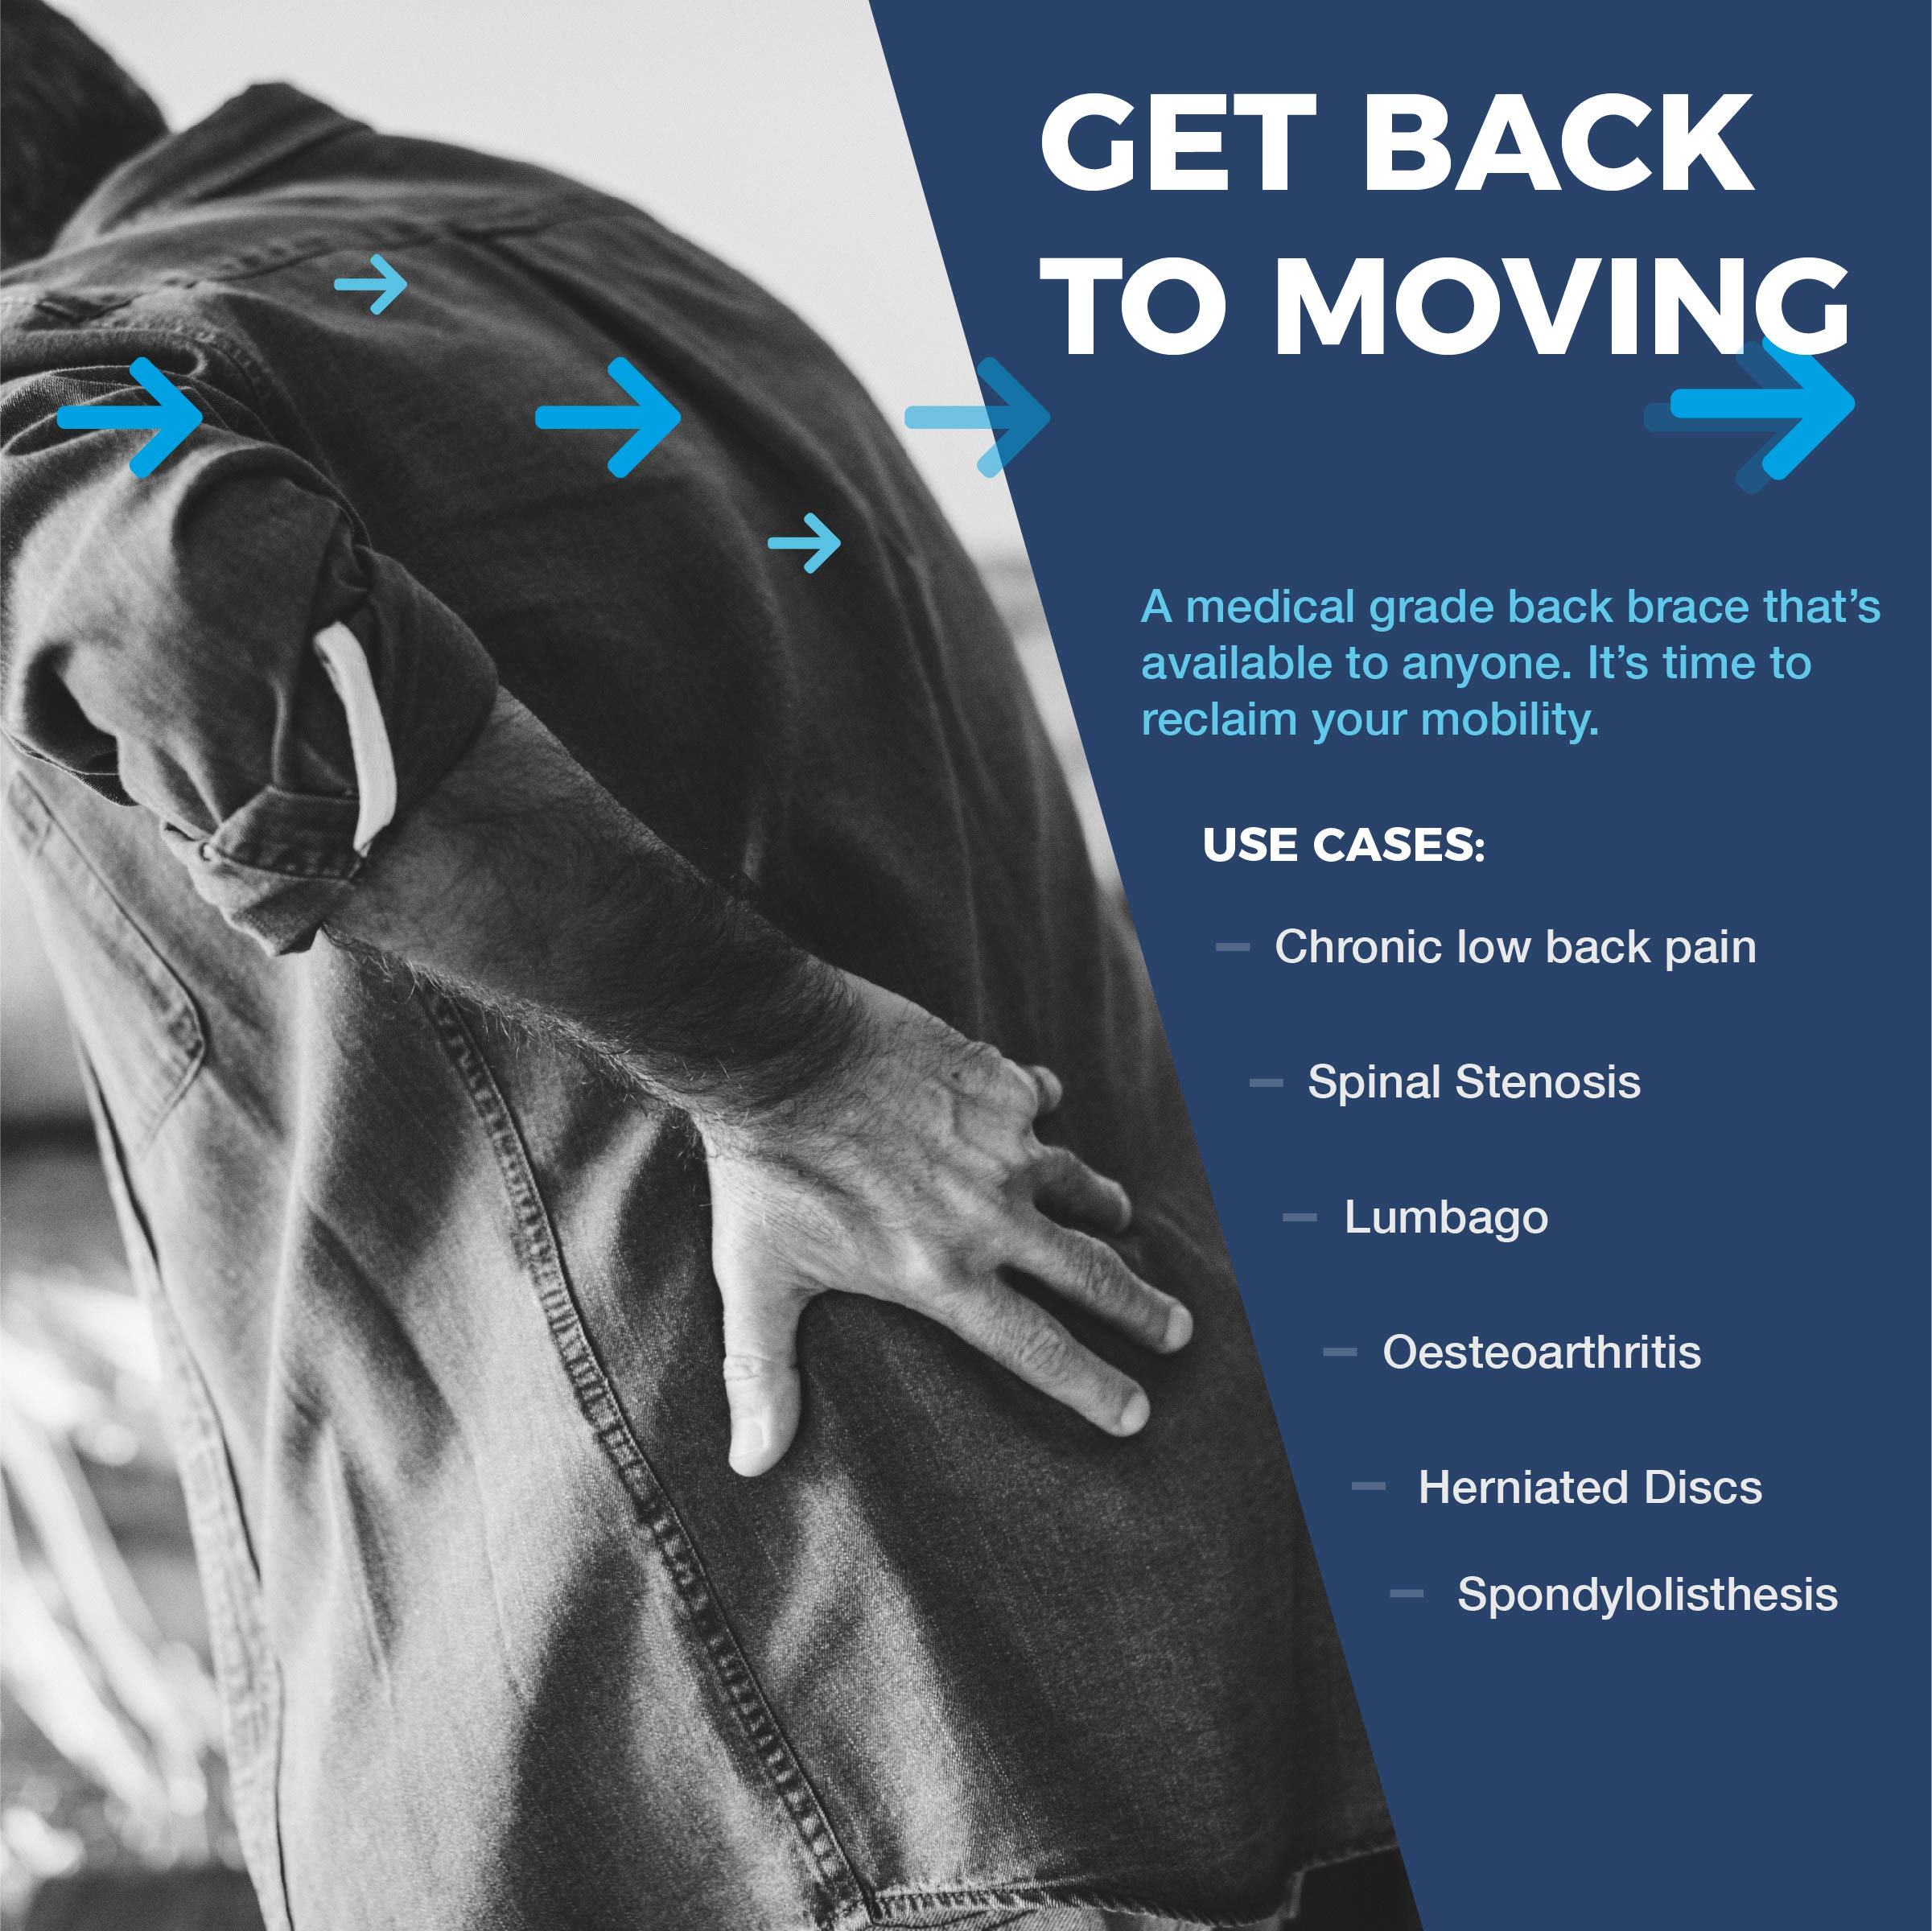 VertaLoc Flex FIT Medical Grade Back Brace and Support for Lower Back Pain - Extra Large by VERTALOC, INC. (Image #3)